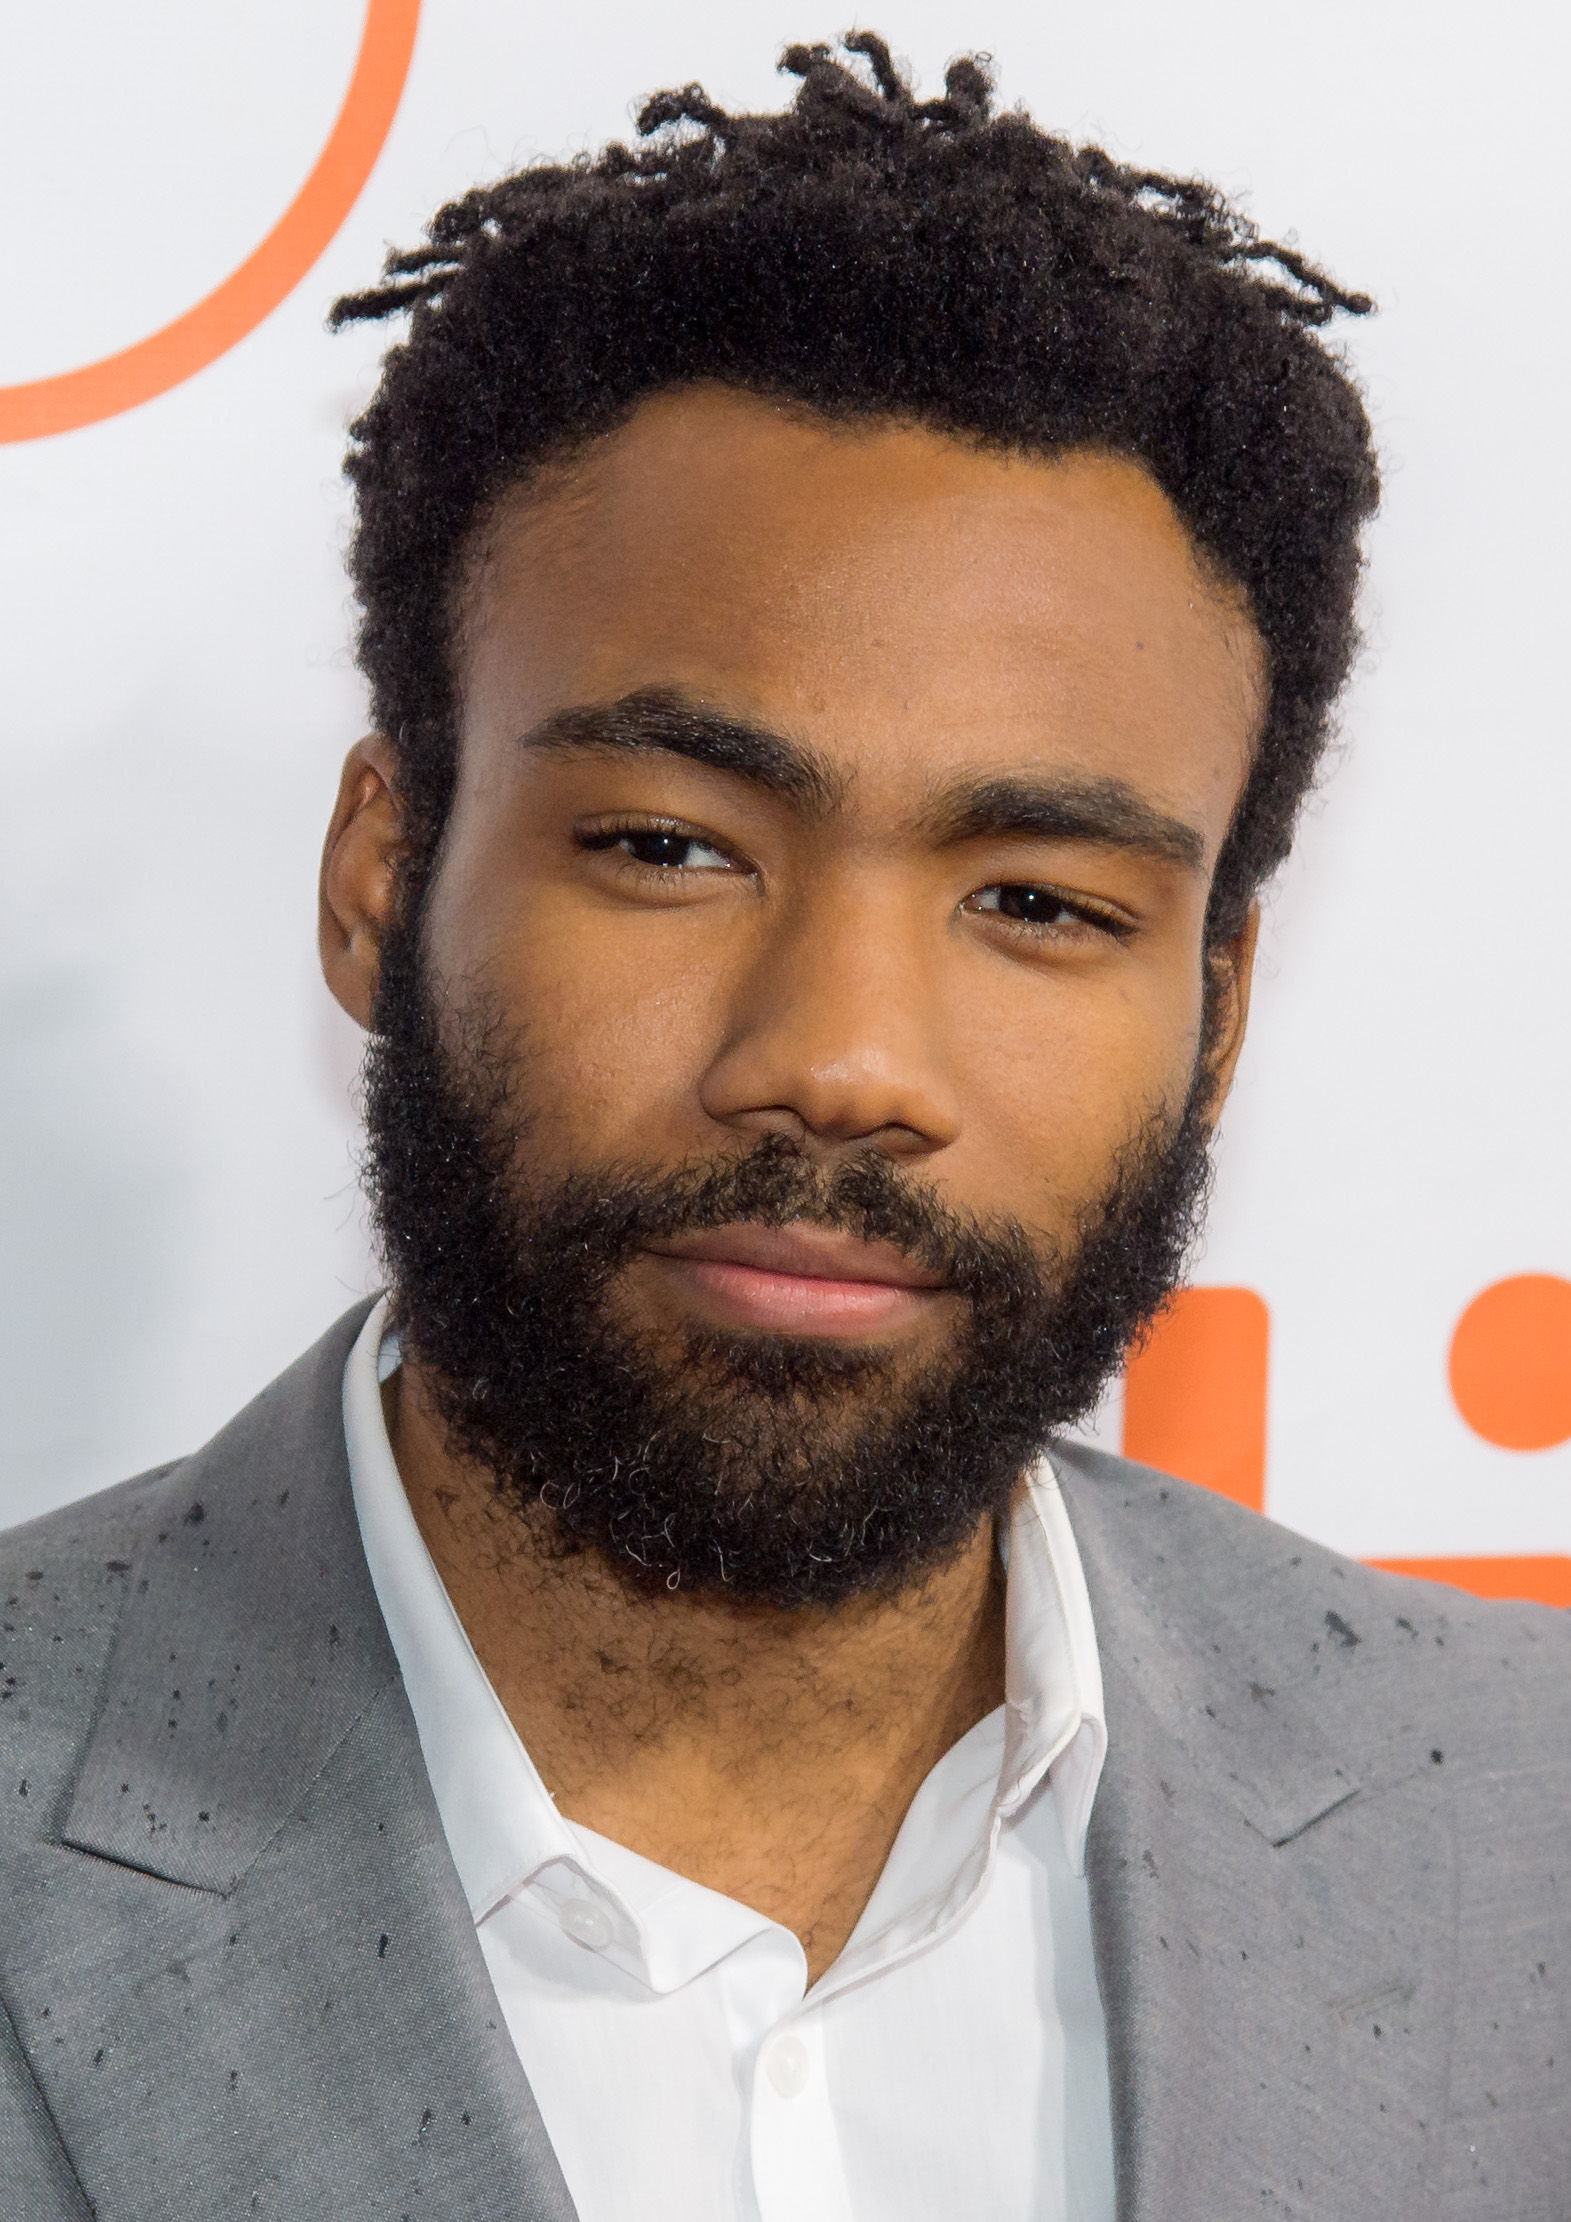 Photo of Donald Glover: American rapper, actor, comedian, and producer